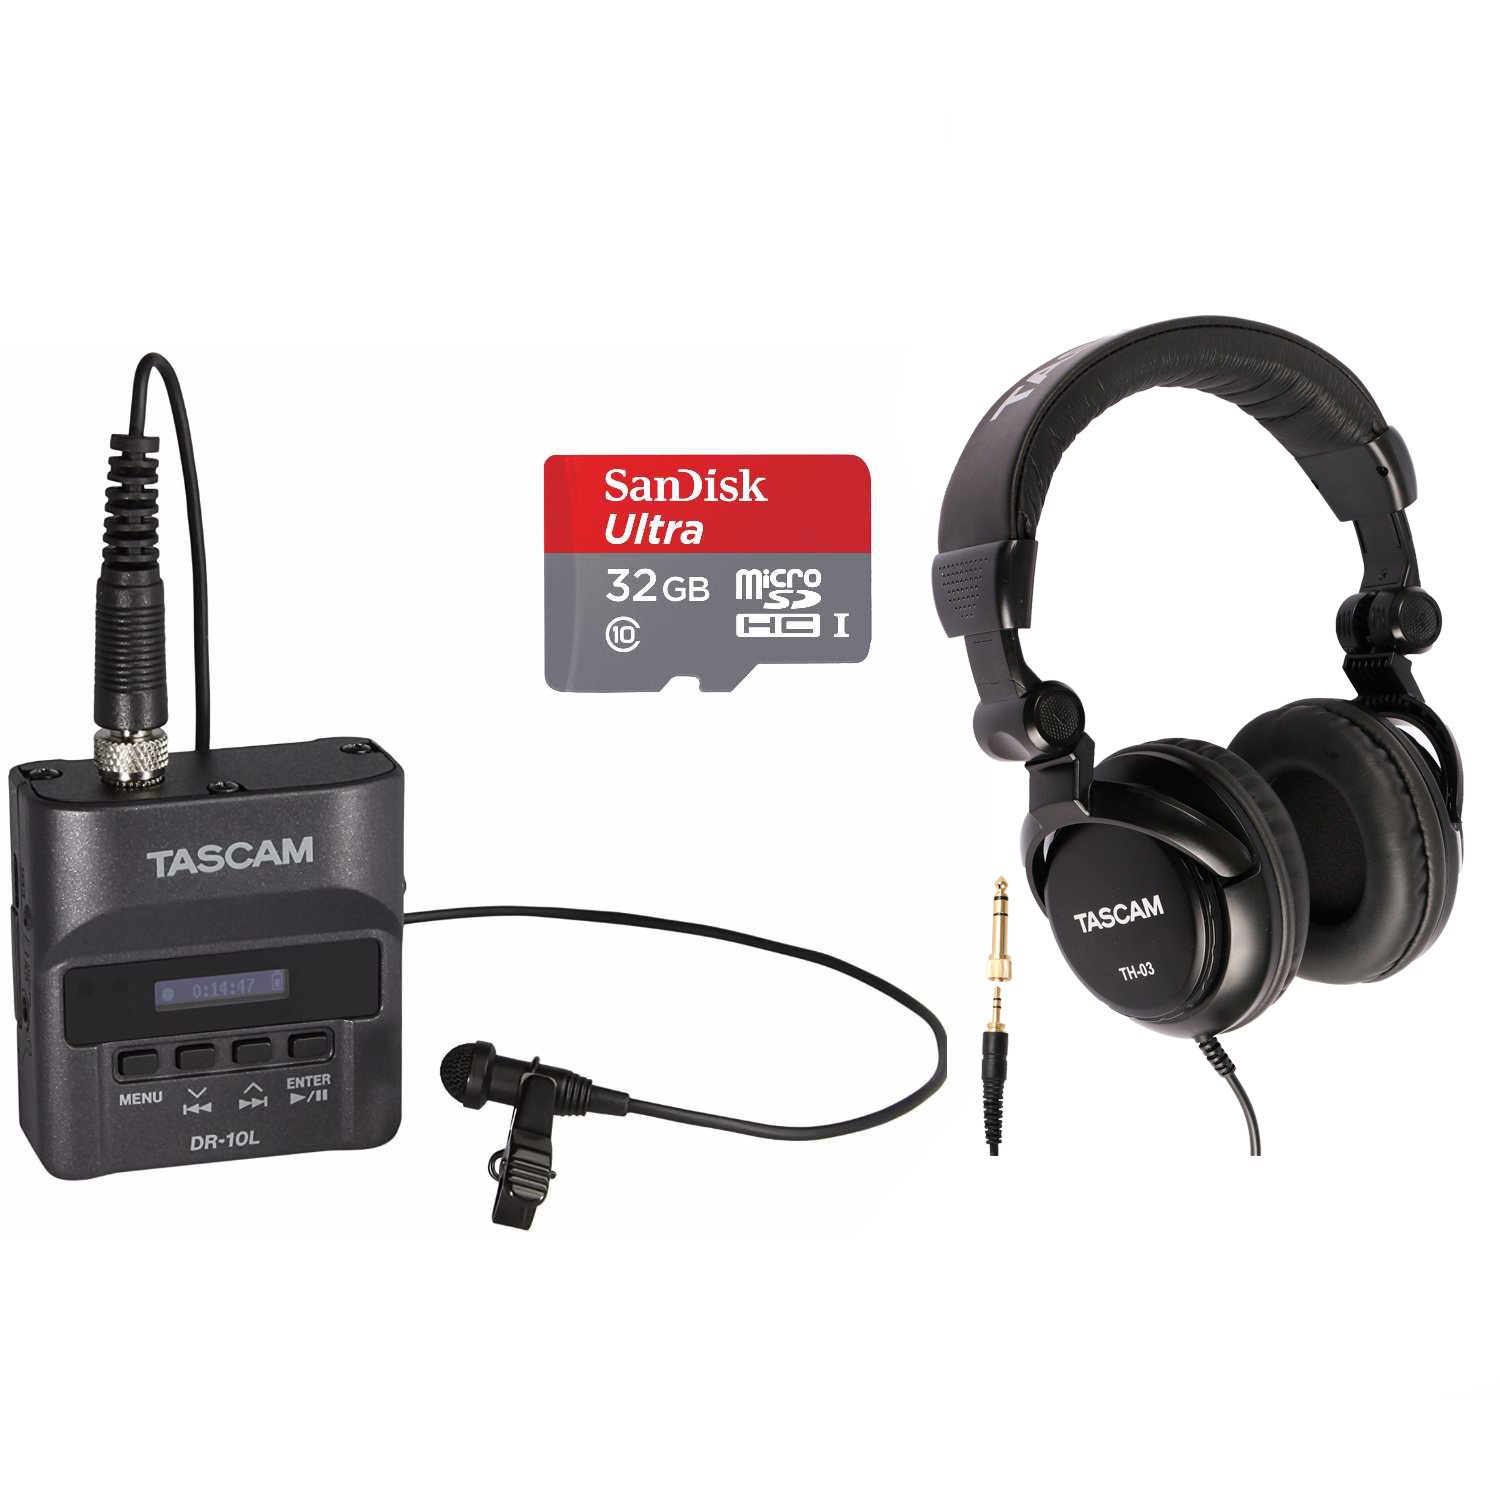 Tascam DR-10L Digital Recorder with Tascam TH-03 Headphones and 32GB SD Card, Black 4334434106